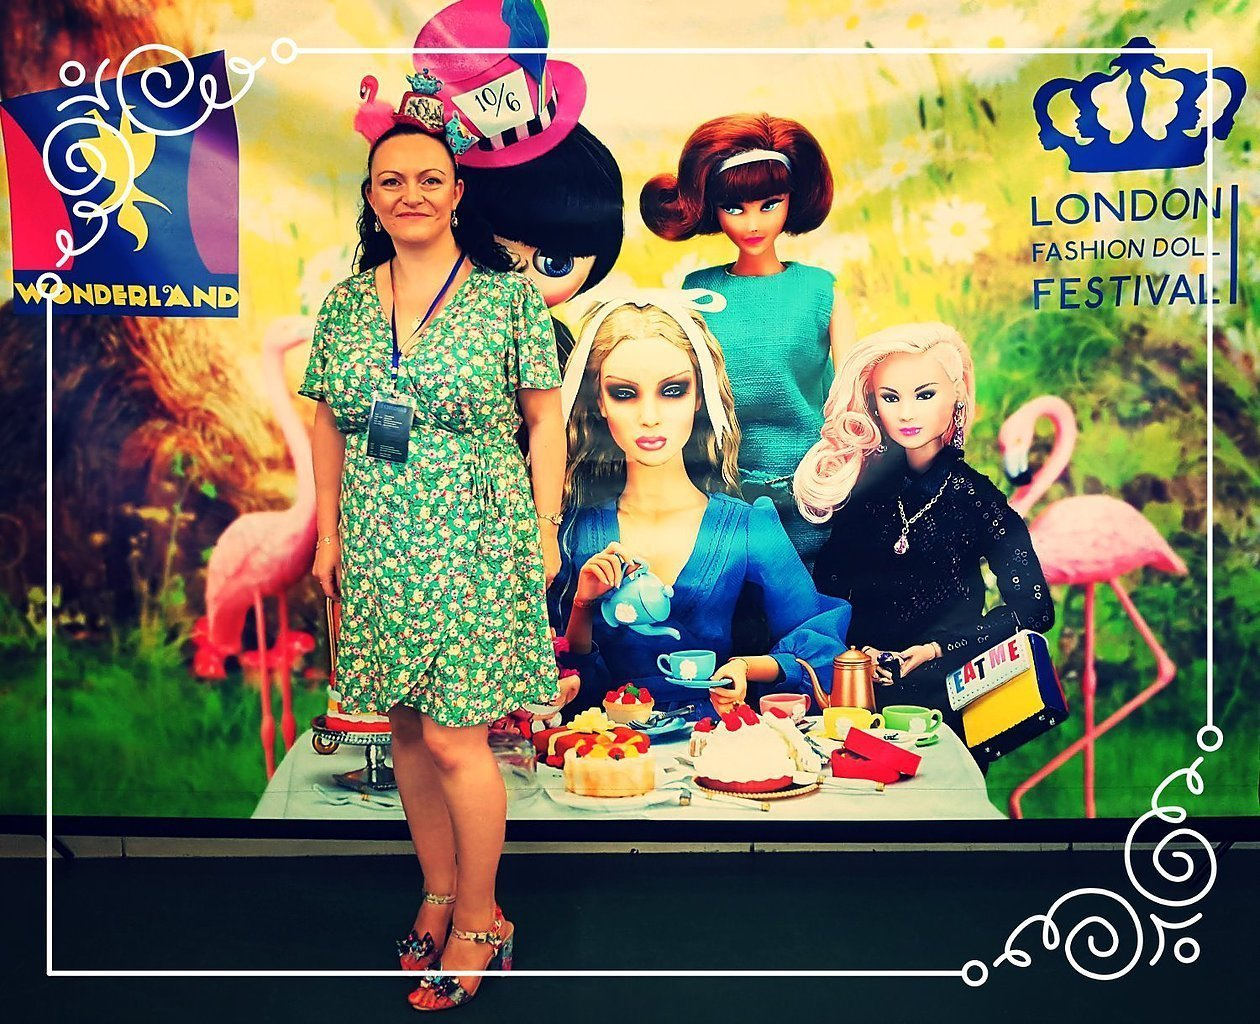 It's been a week since I had the privilege of attending the very first London Fashion Doll Festival. 2